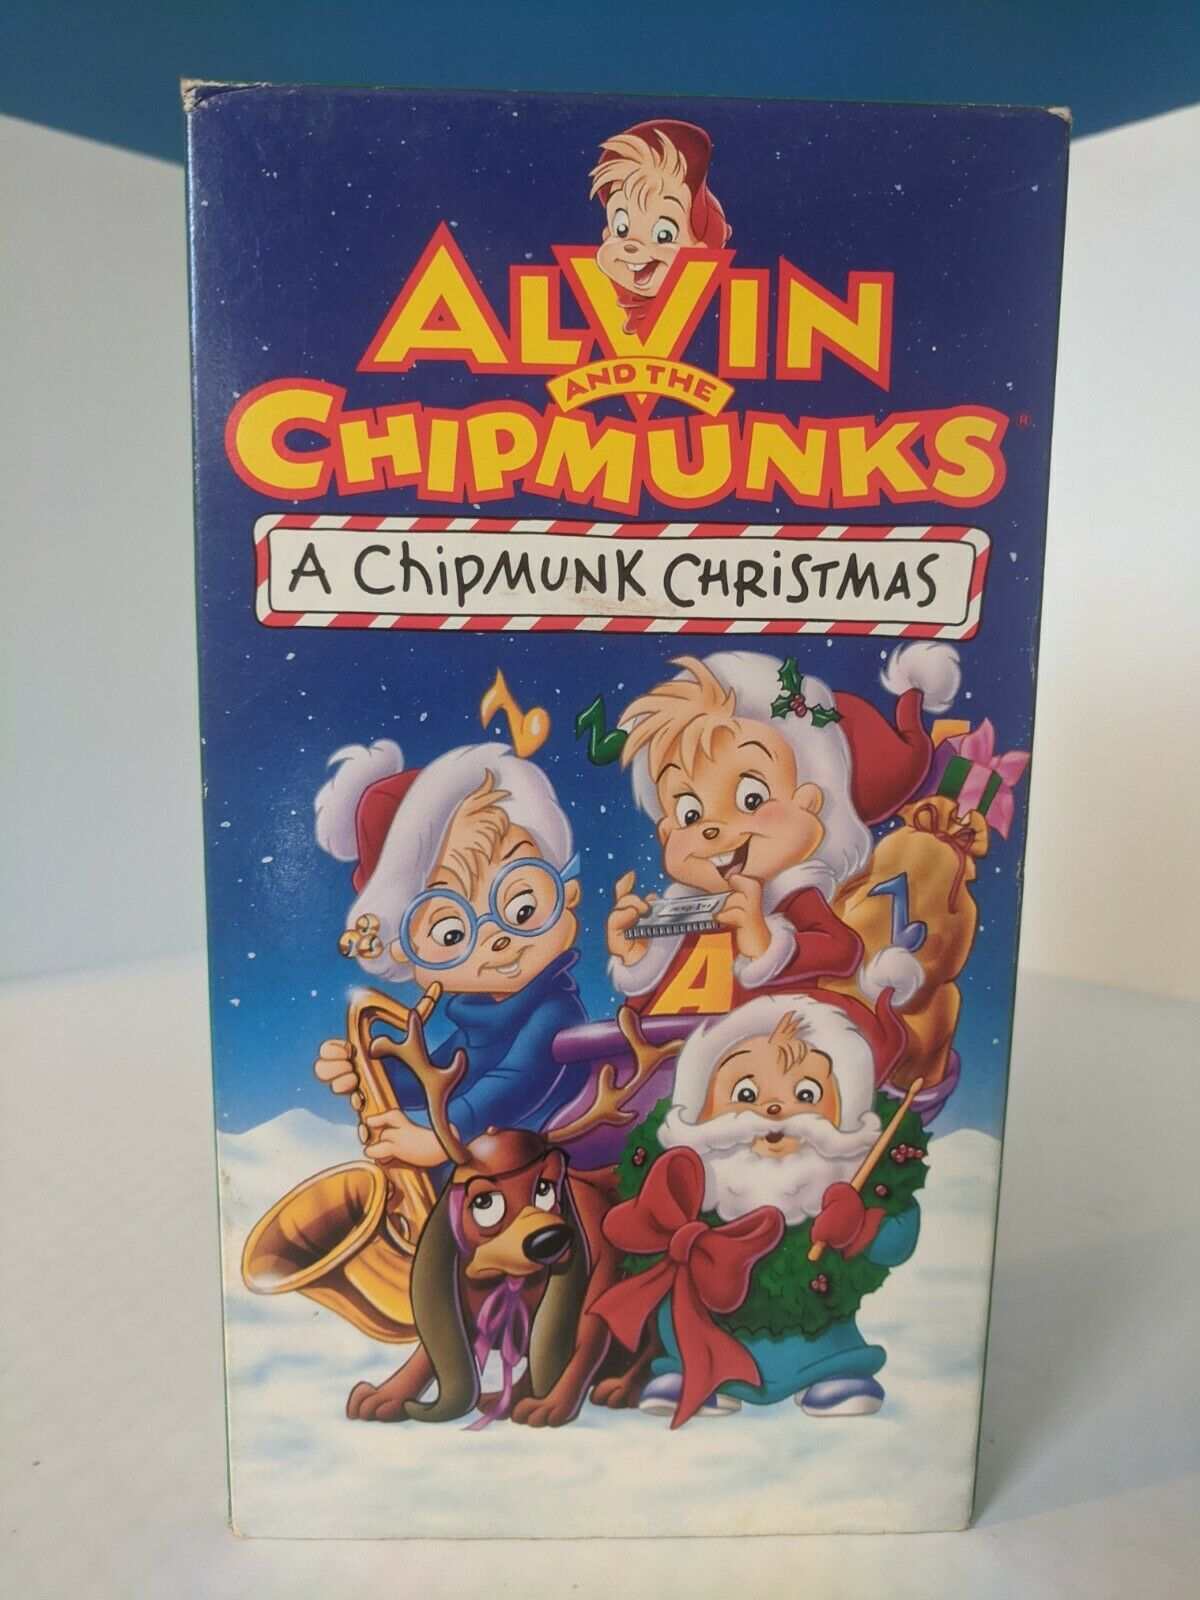 Alvin and the Chipmunks: A Chipmunk Christmas (1992 VHS)